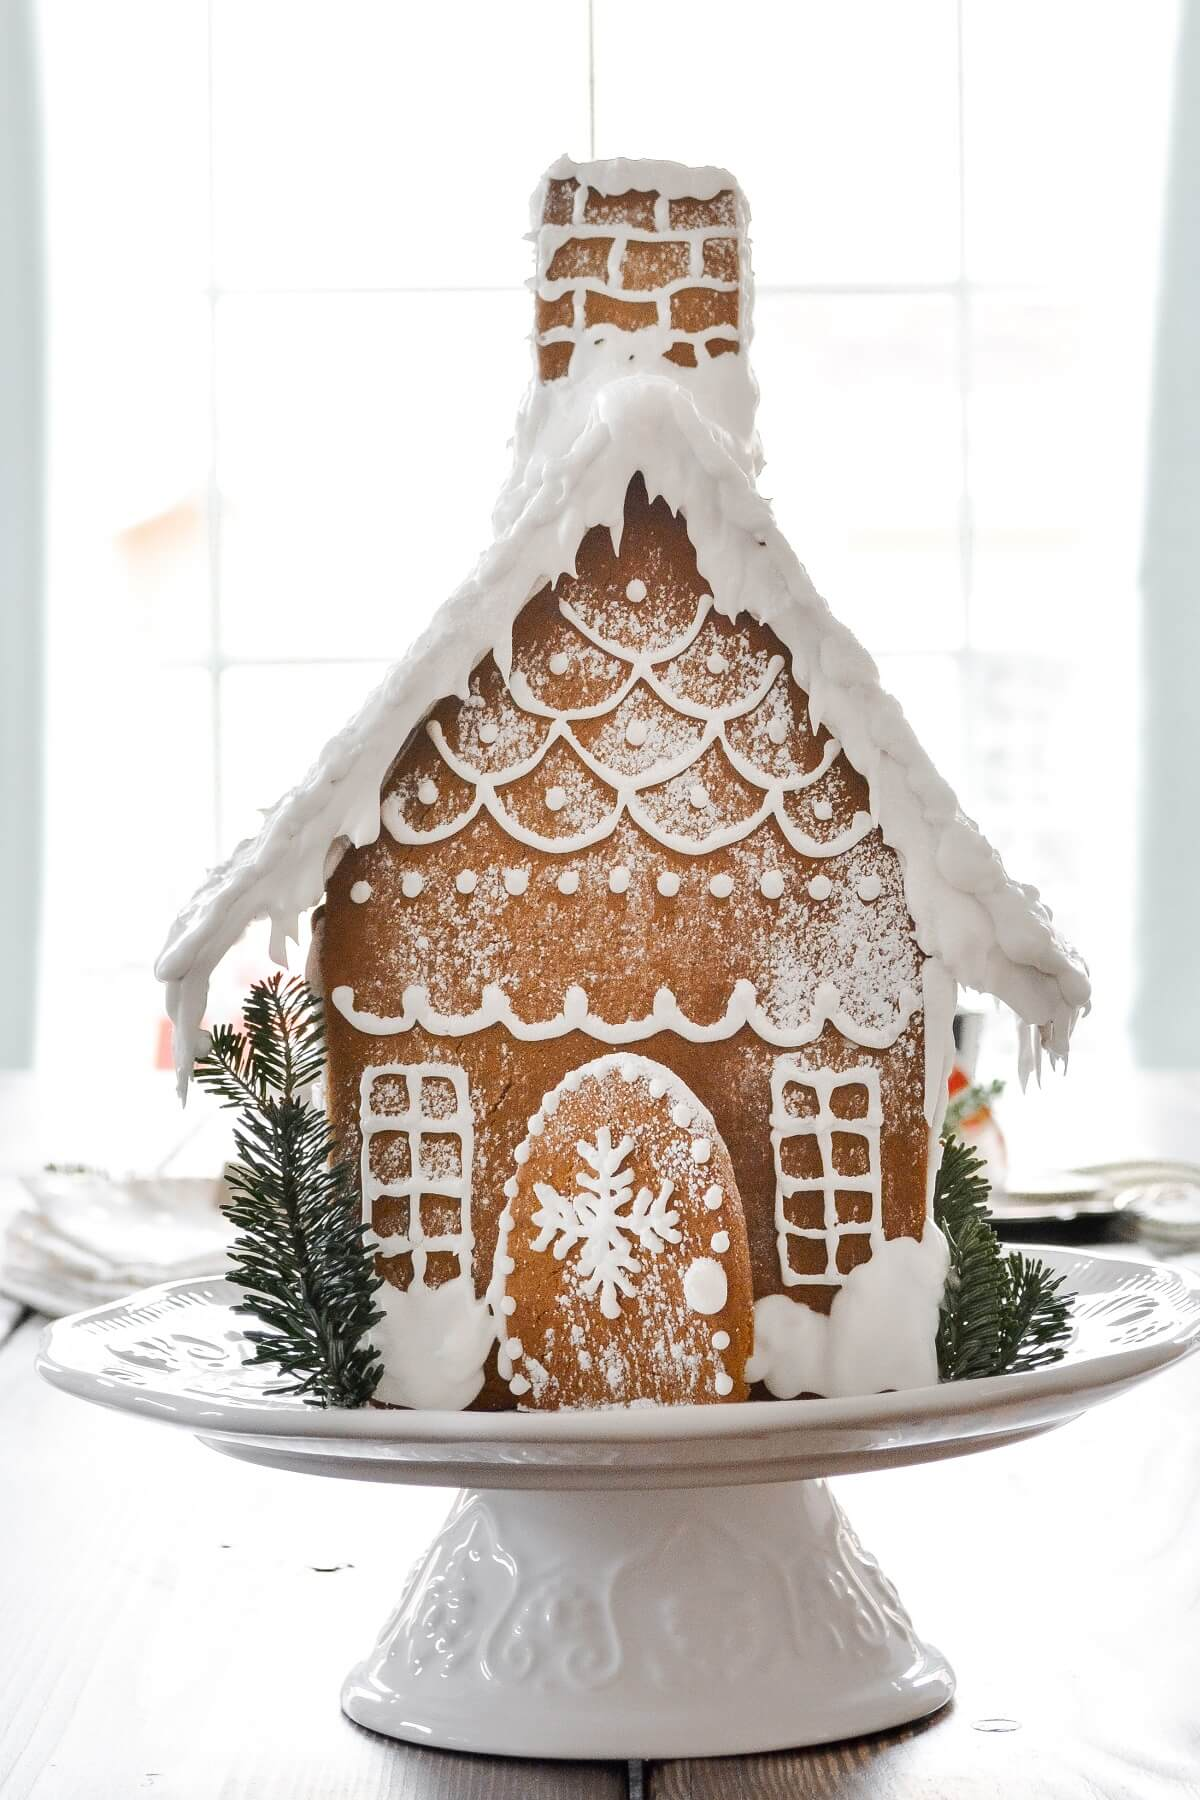 Gingerbread house with icing details.